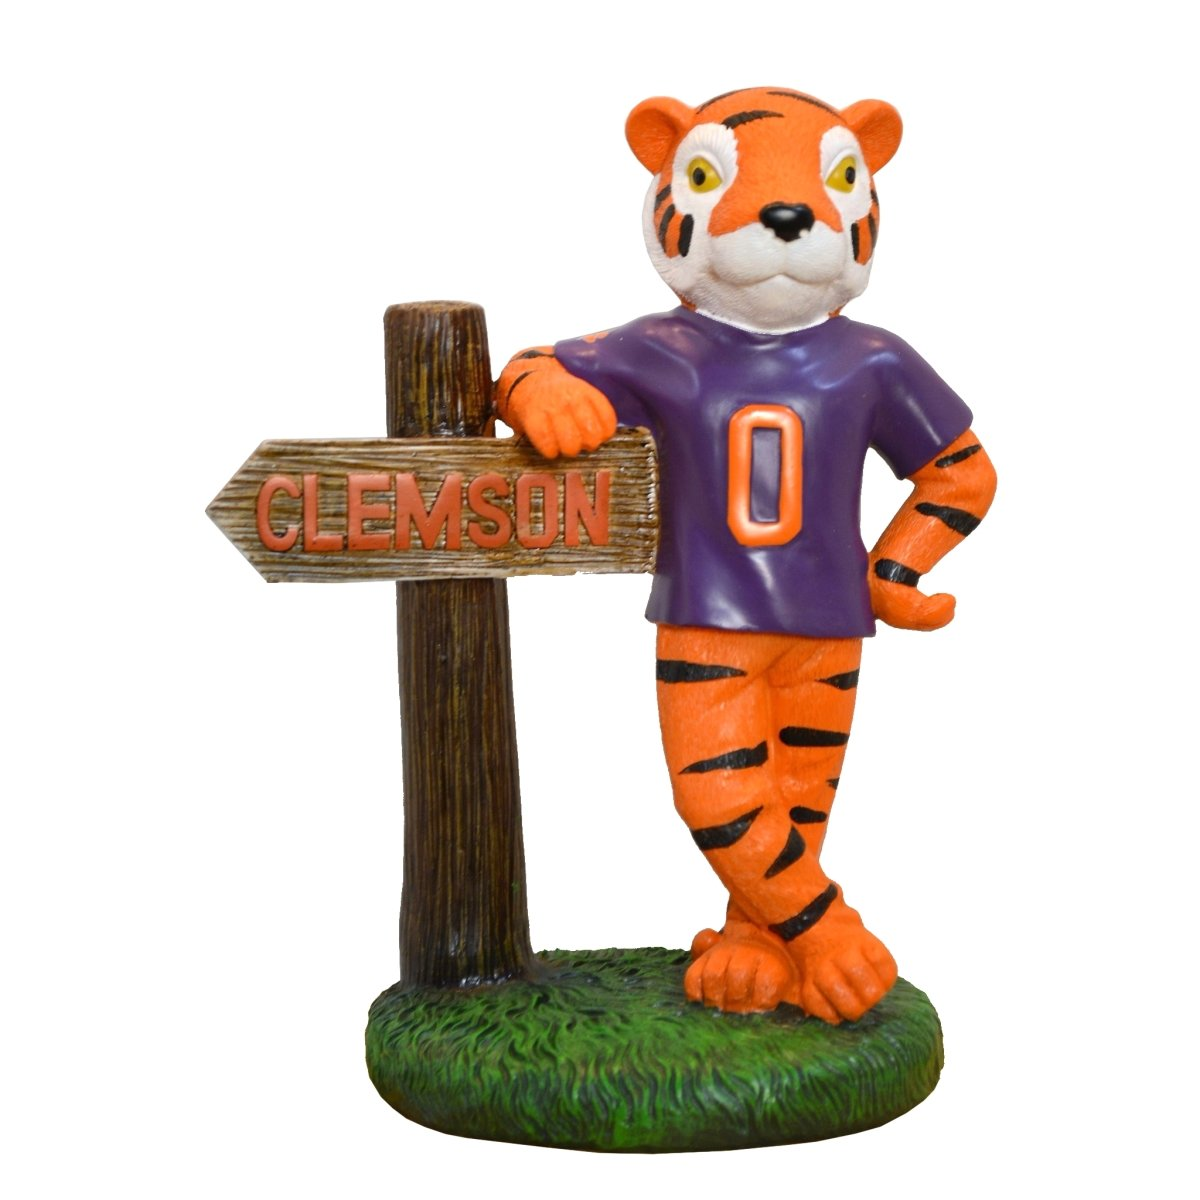 Garden Figurine Mascot With Sign and Purple Shirt 10'' - Mr. Knickerbocker